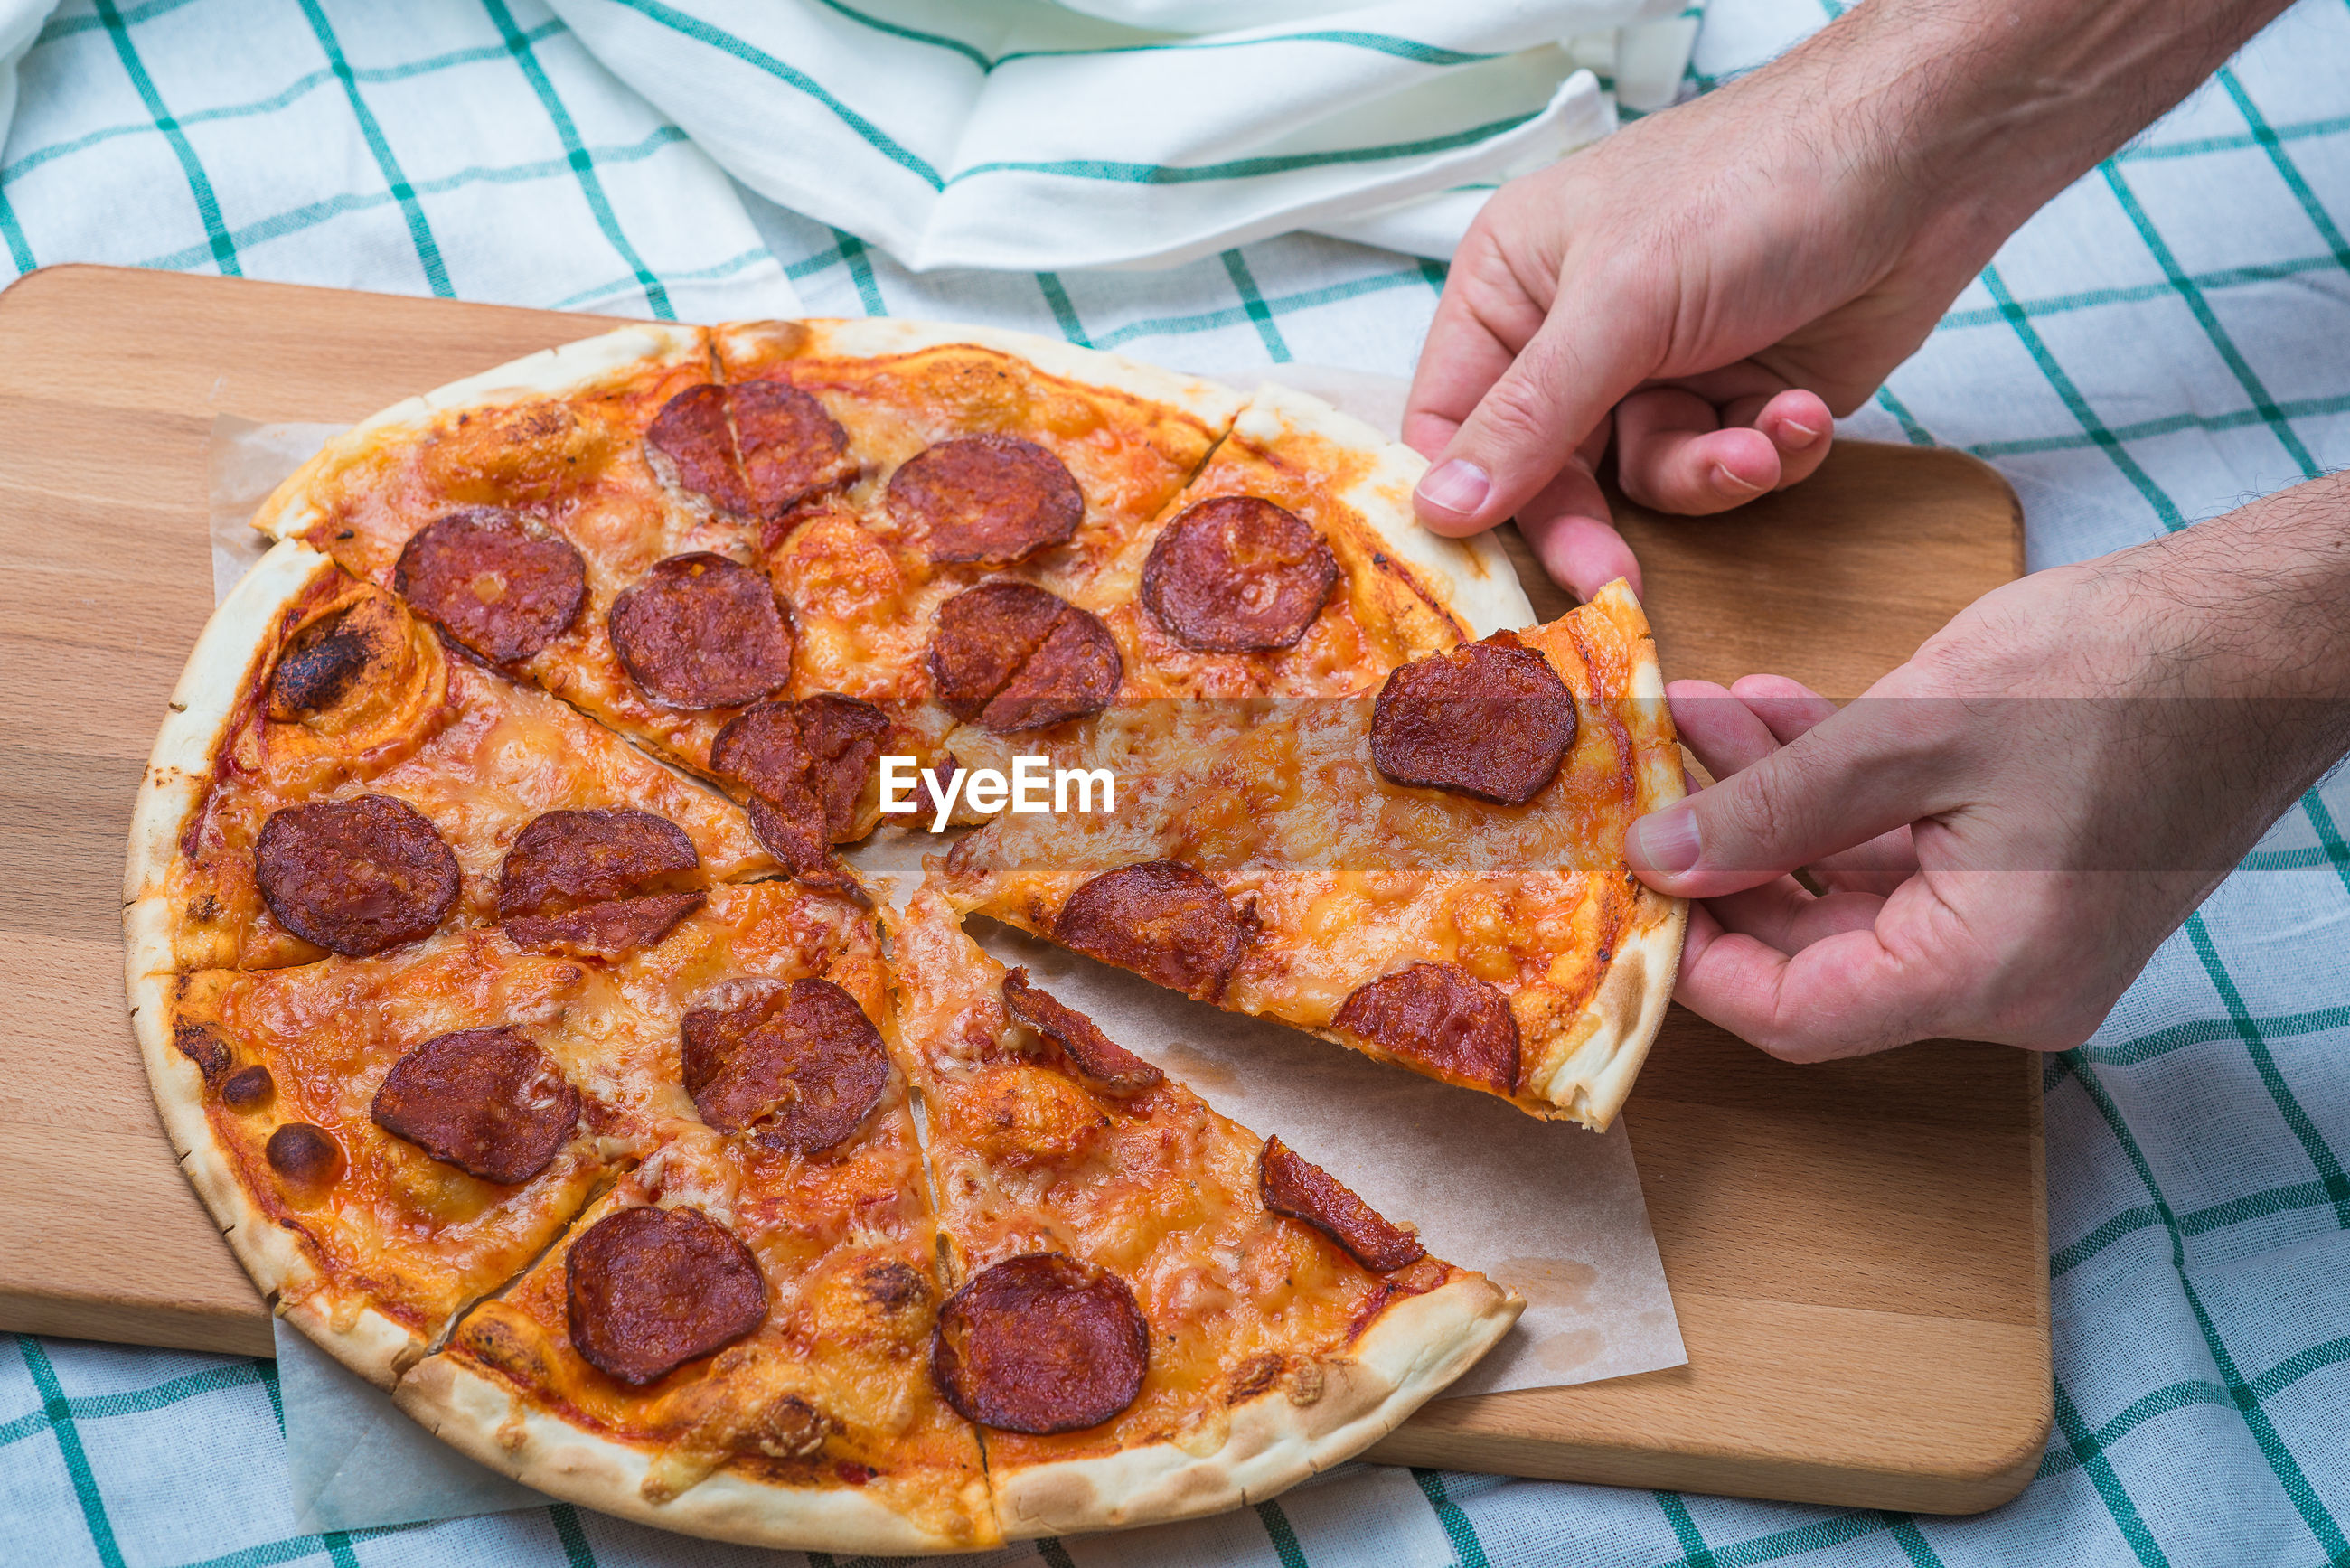 Cropped hands of man picking pizza slices